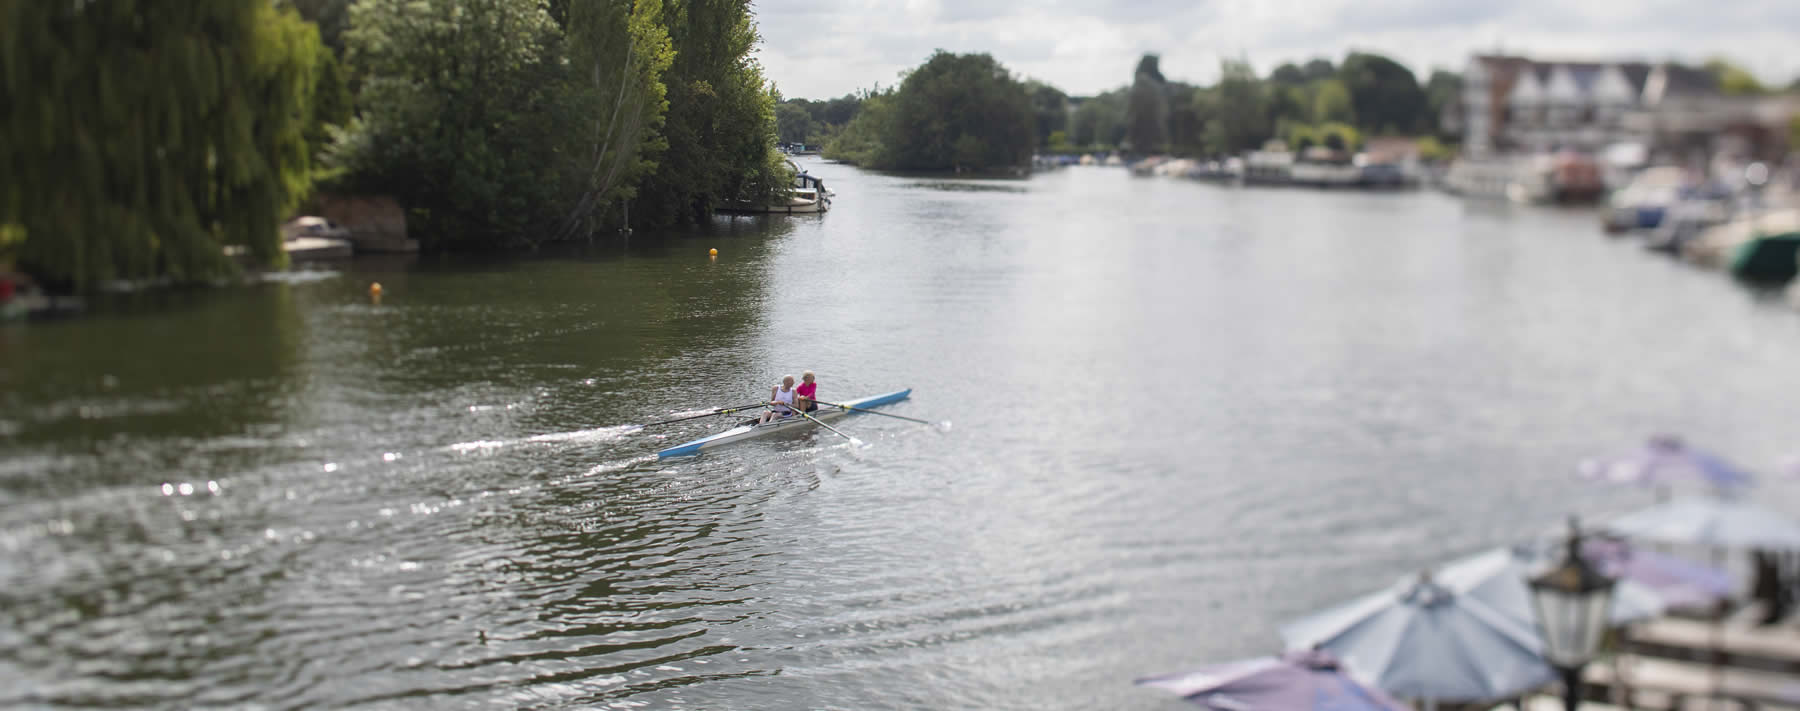 Two guys rowing in henley on thames river